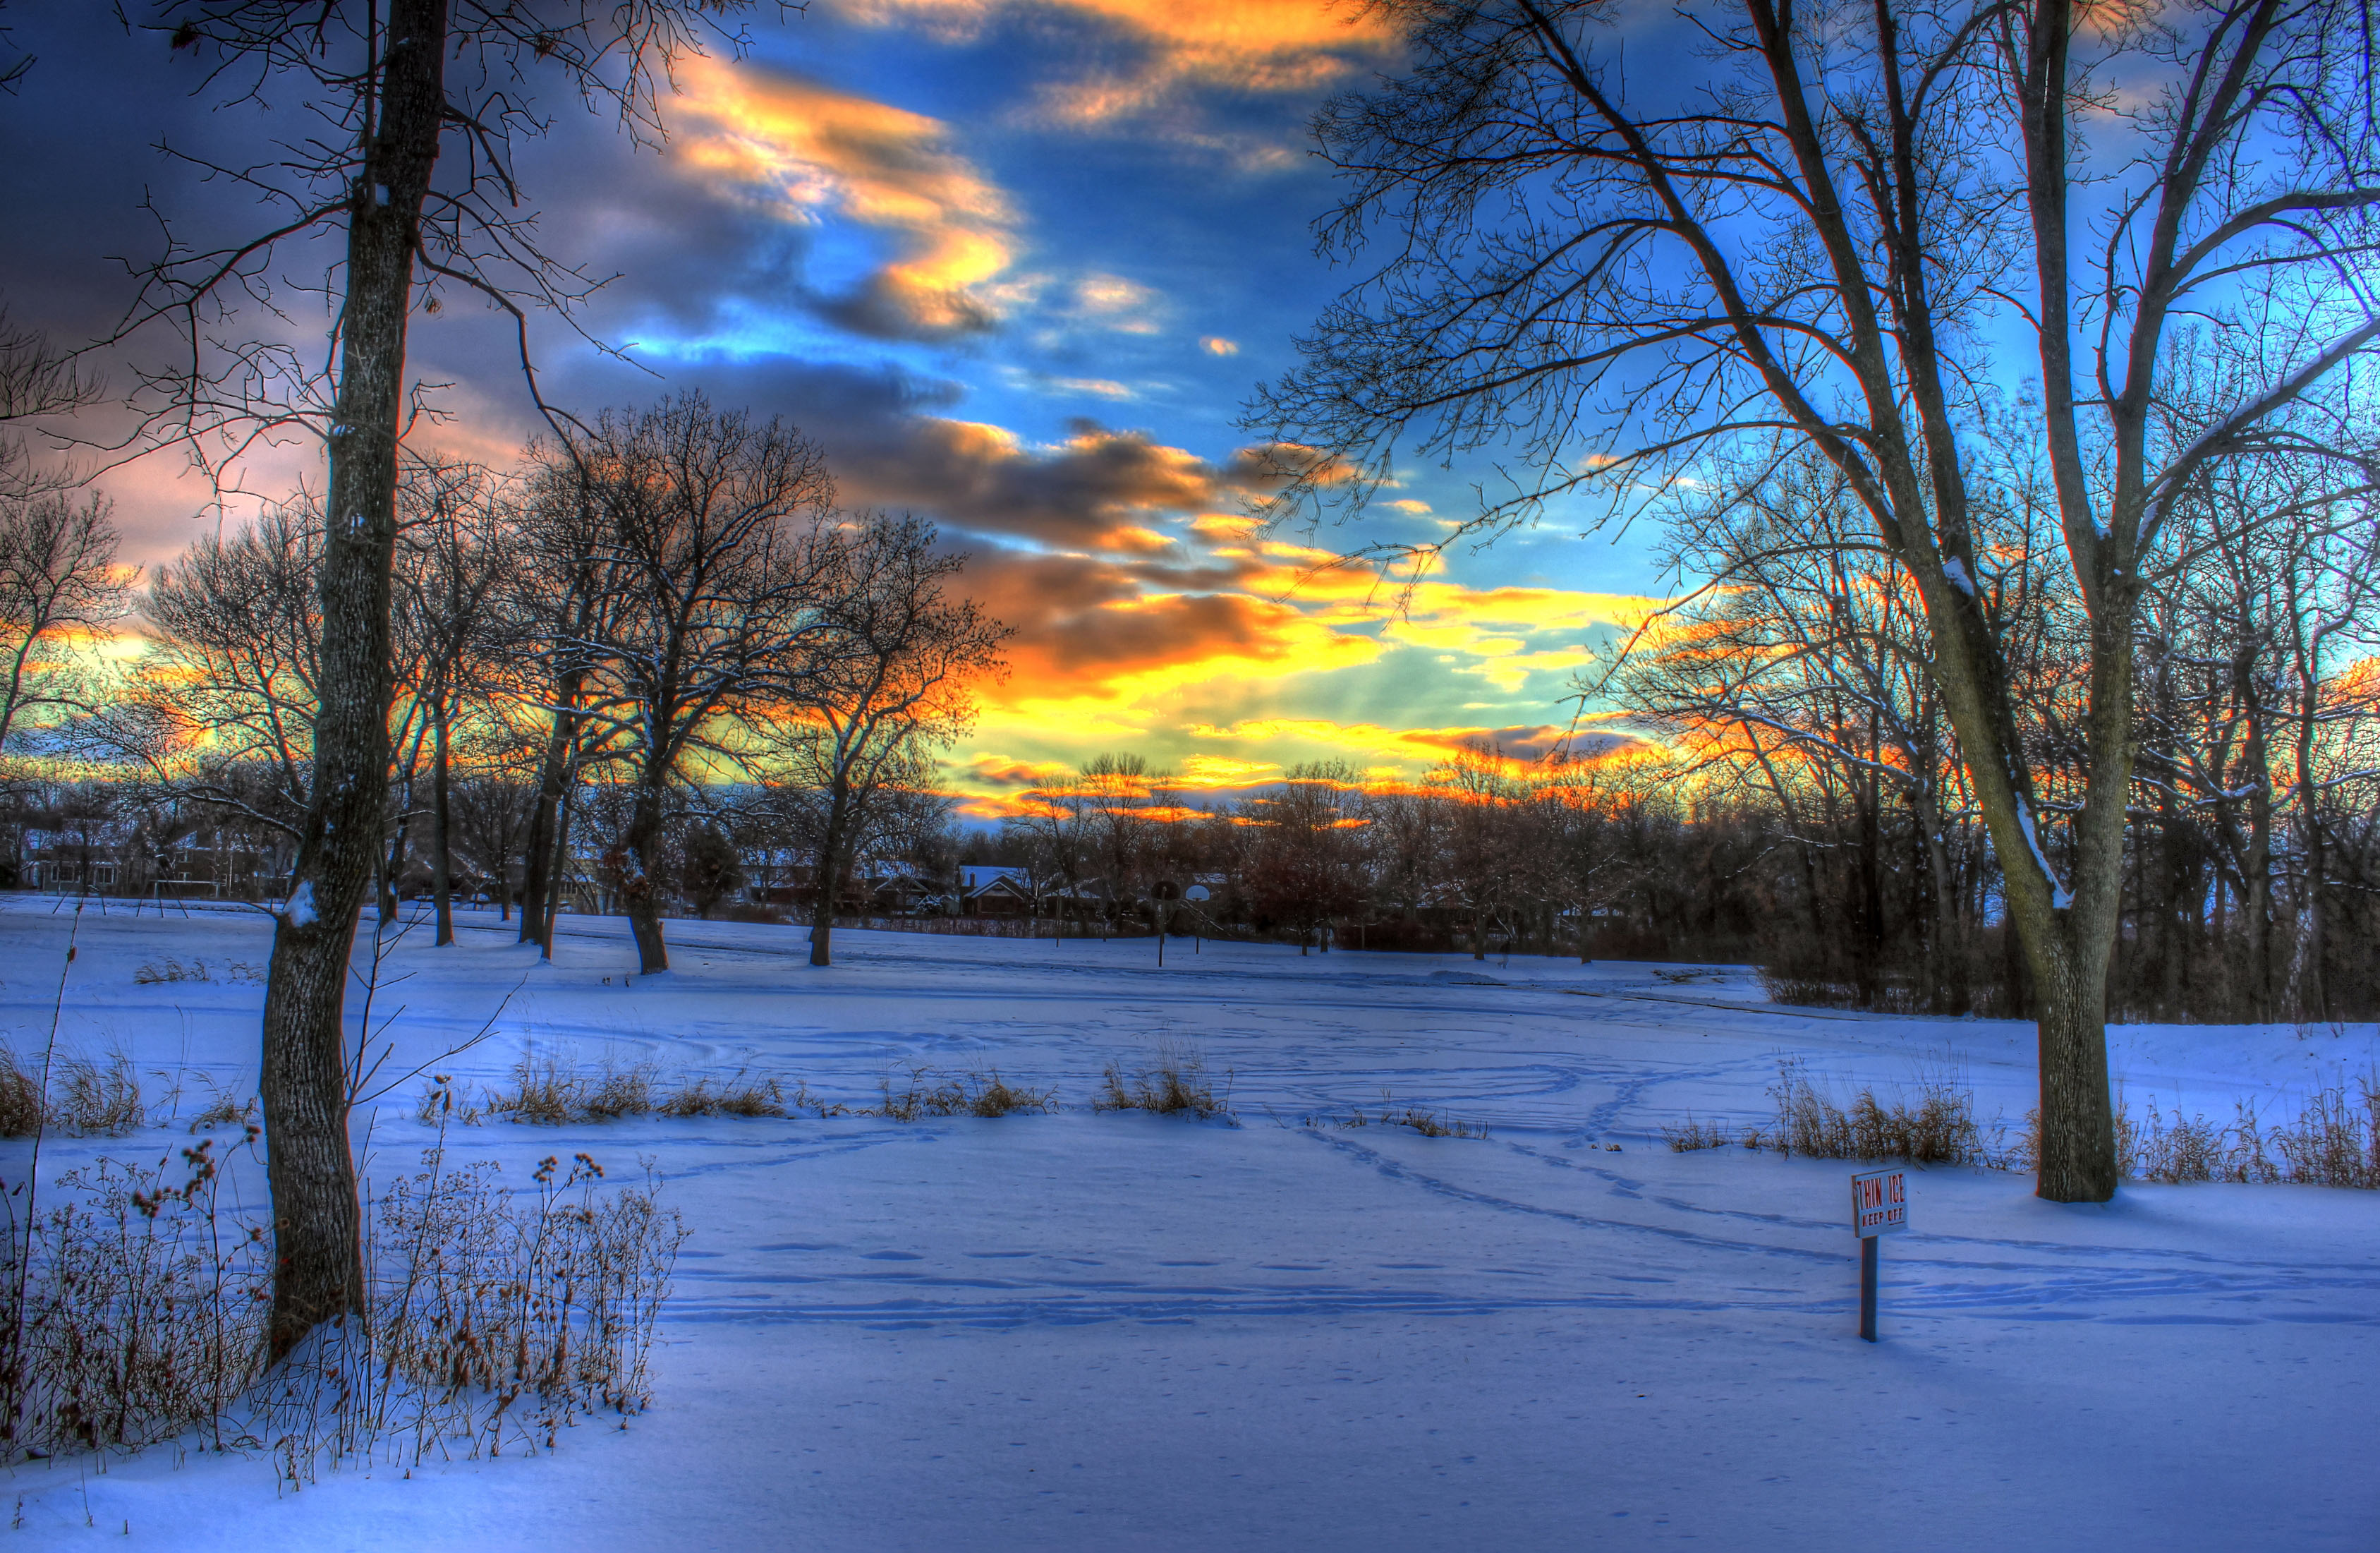 3d Painting Hd Wallpaper Winter Sunset In Madison Wisconsin Image Free Stock